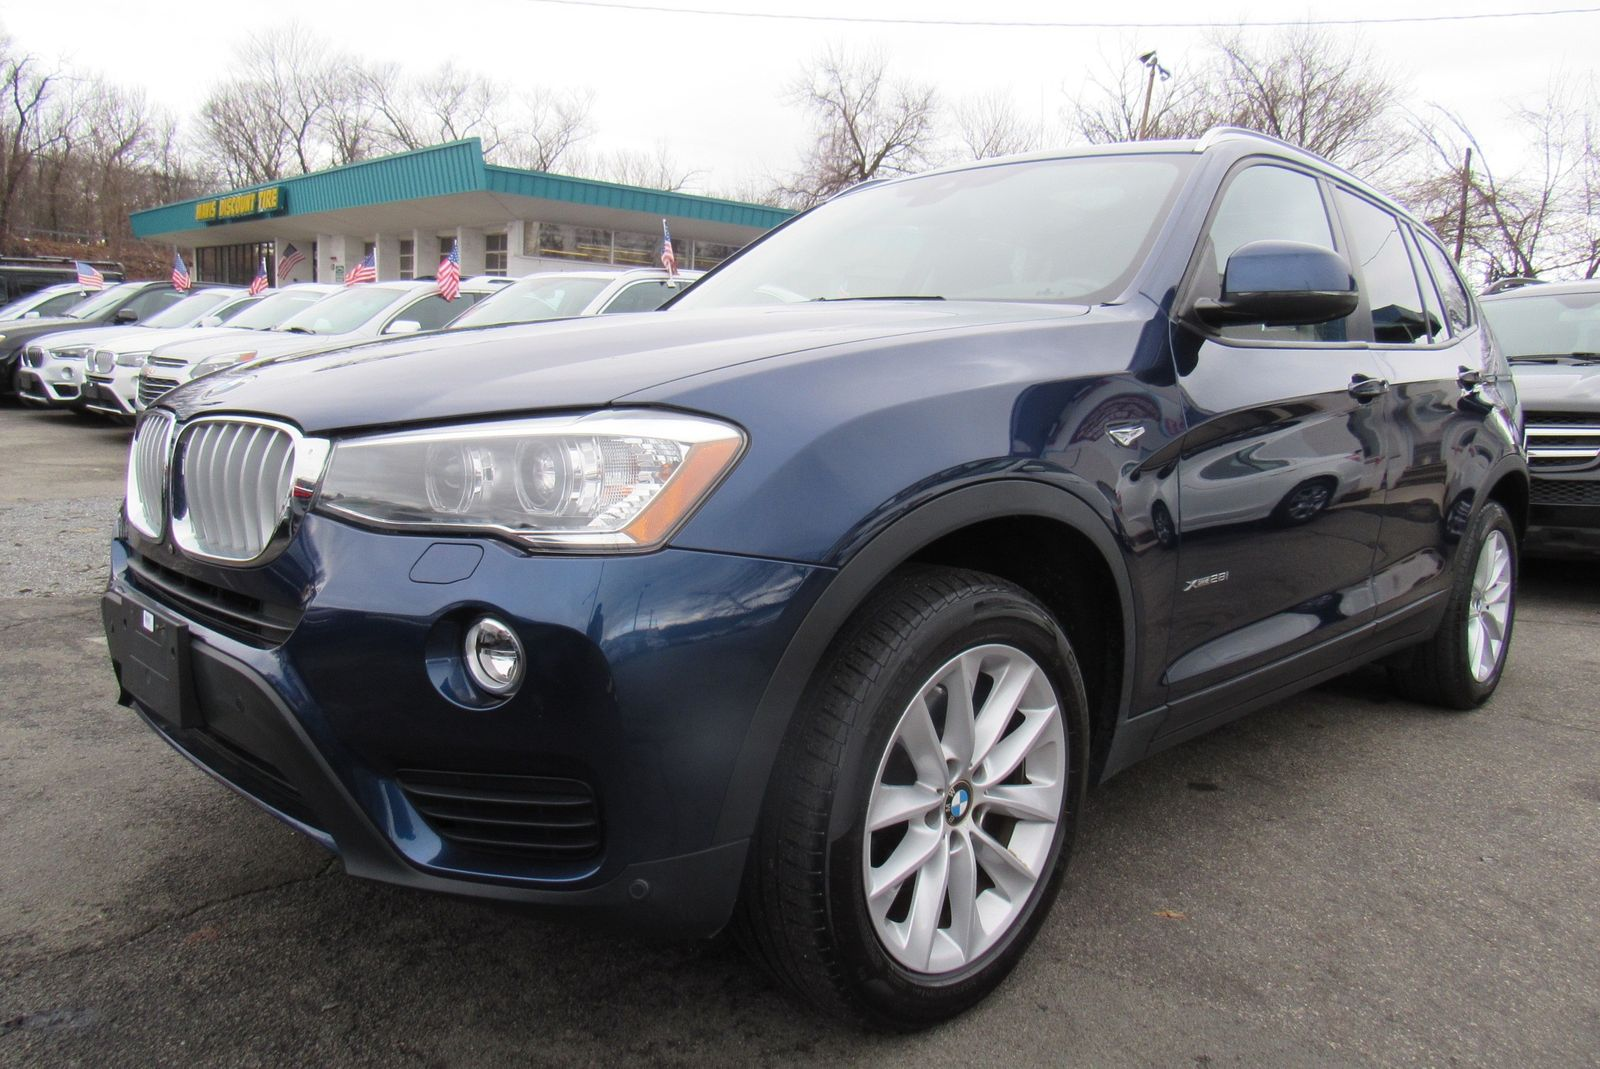 2017 BMW X3 . Lot 999186418356 Vin 5UXWX9C3XH0W66650